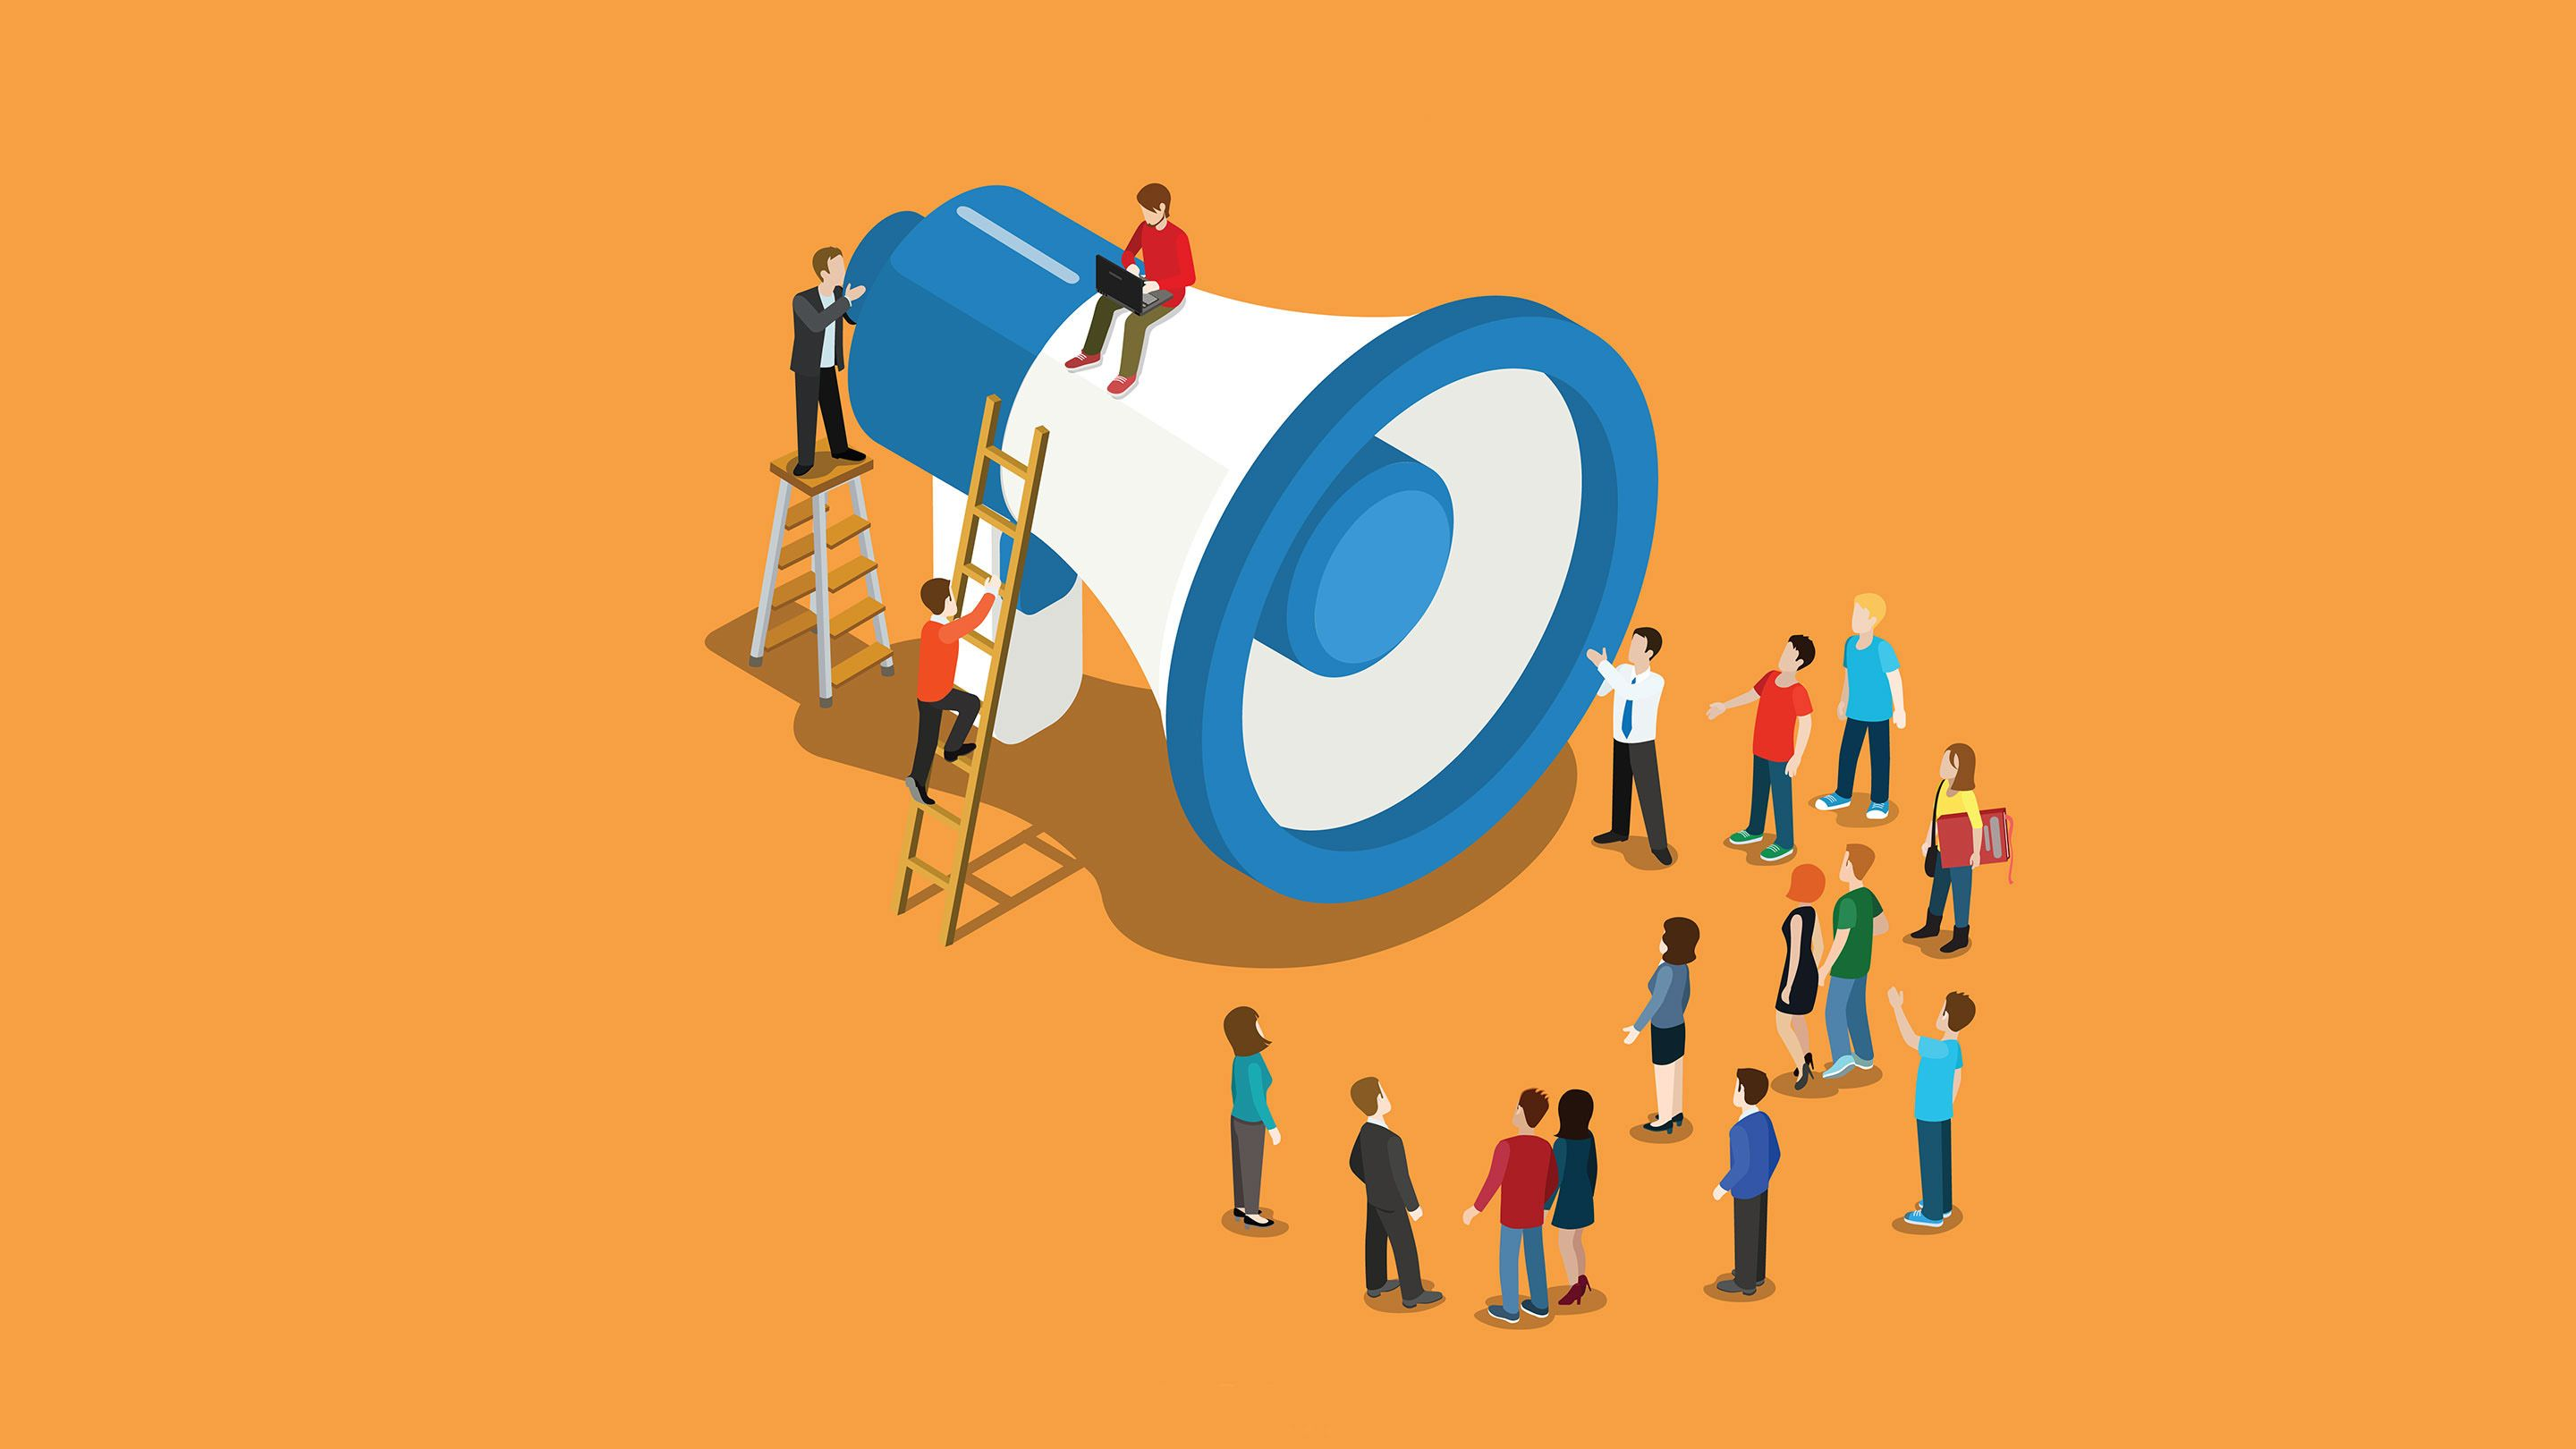 Animated image of twenty people standing in front of a gigantic megaphone.